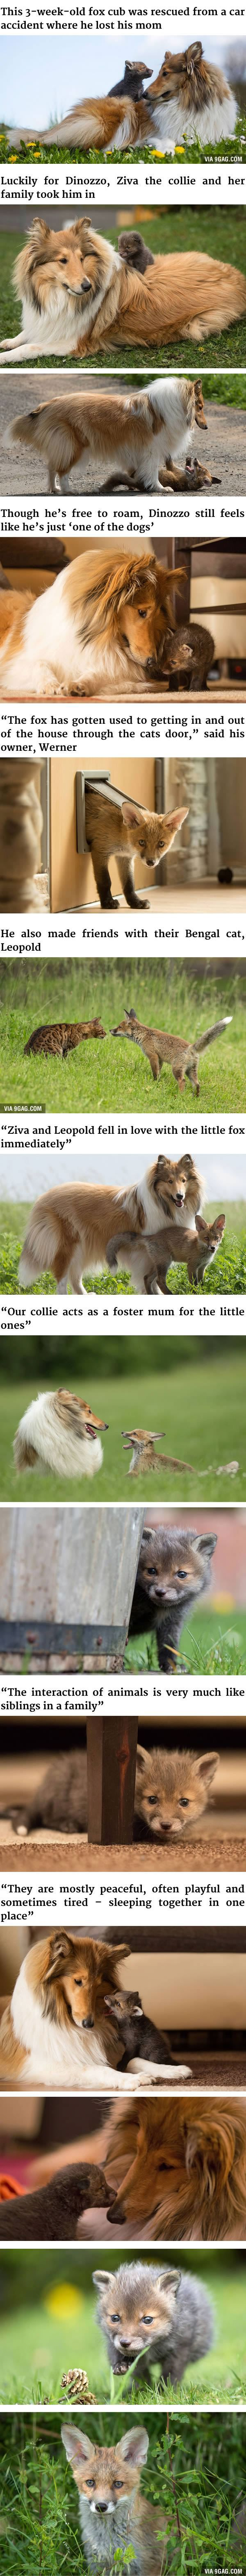 After His Mom Died In A Car Accident, This Fox Cub Was Adopted By A Loving Momma Dog